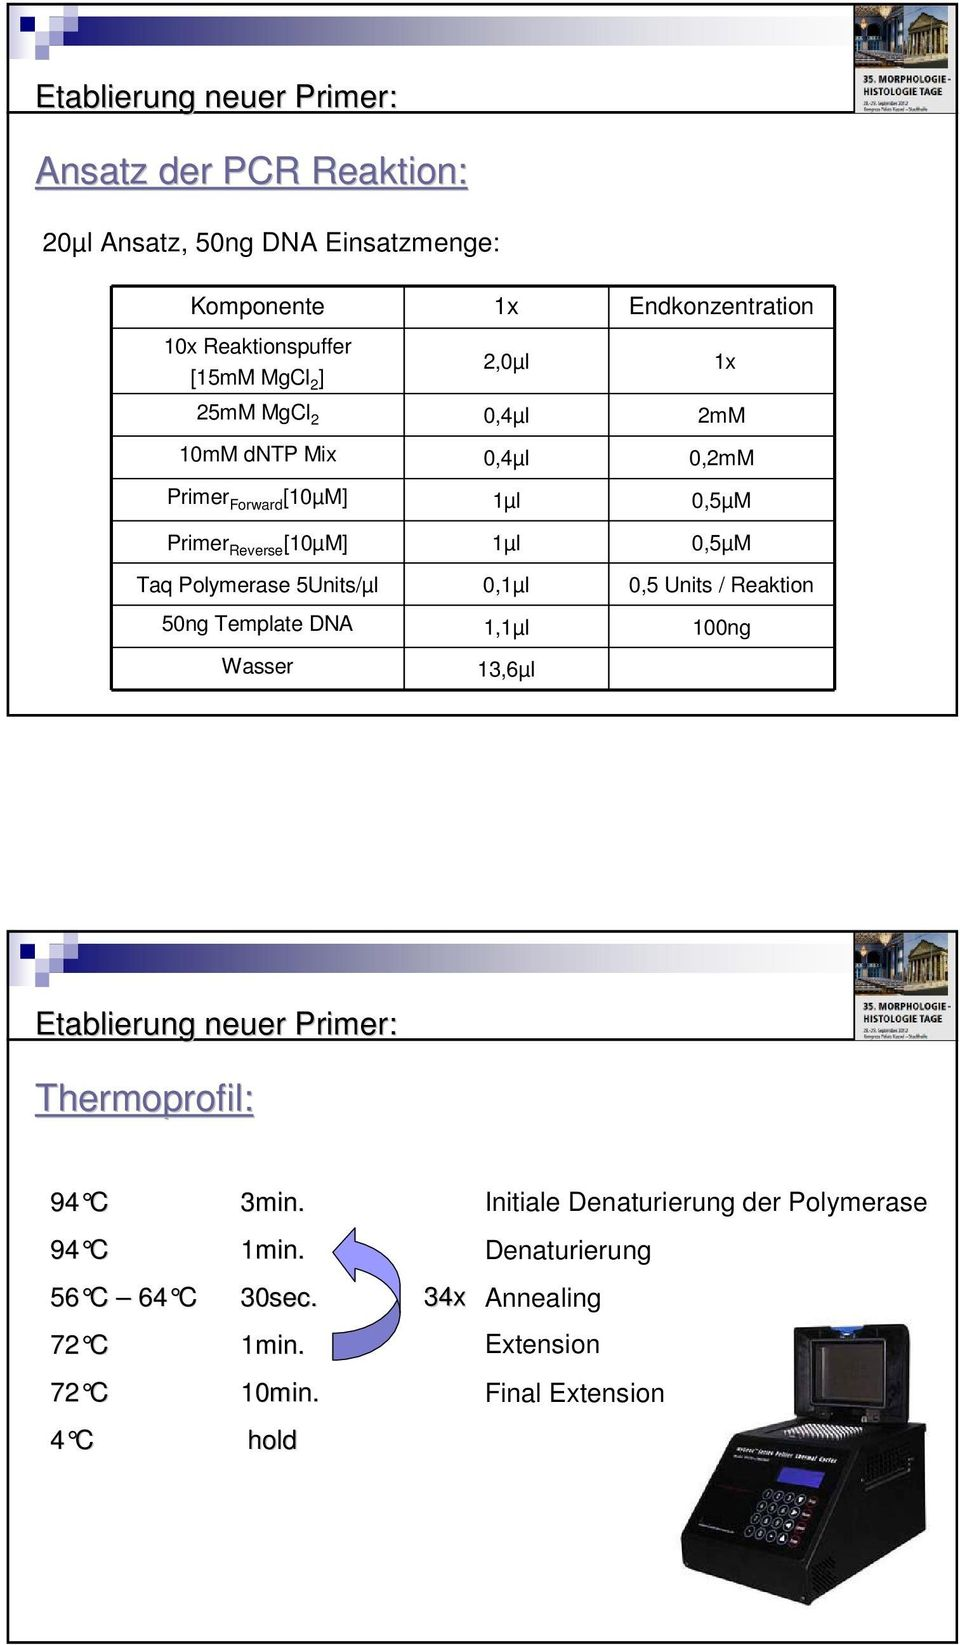 Polymerase 5Units/µl 0,1µl 0,5 Units / Reaktion 50ng Template DNA 1,1µl 100ng 1x Wasser 13,6µl Etablierung neuer Primer: Thermoprofil: 94 C